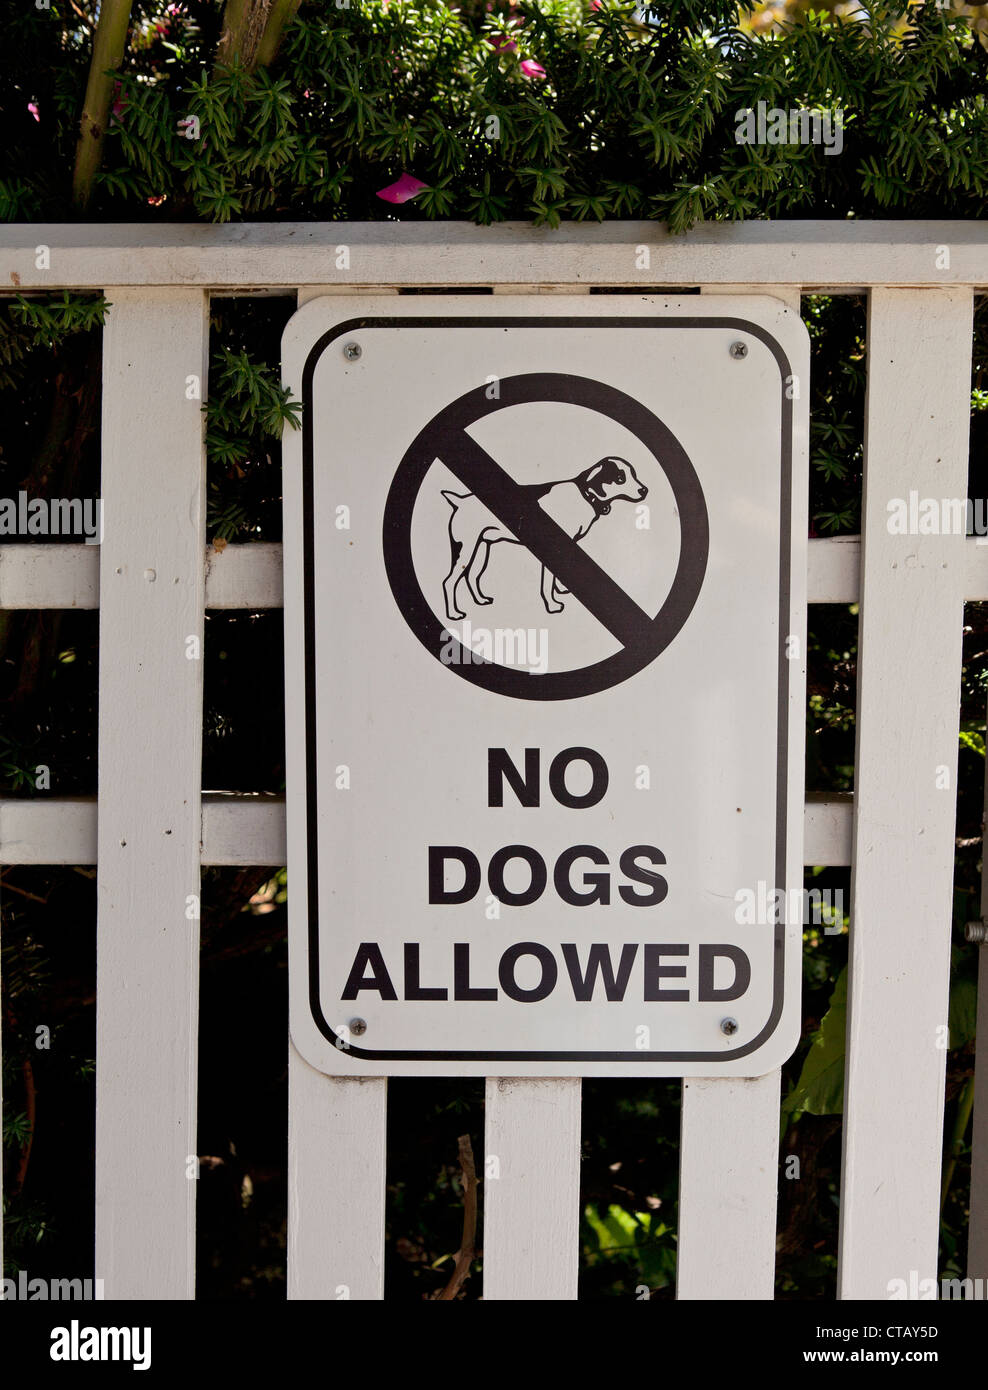 A sign on a fence says that no dogs are allowed. - Stock Image